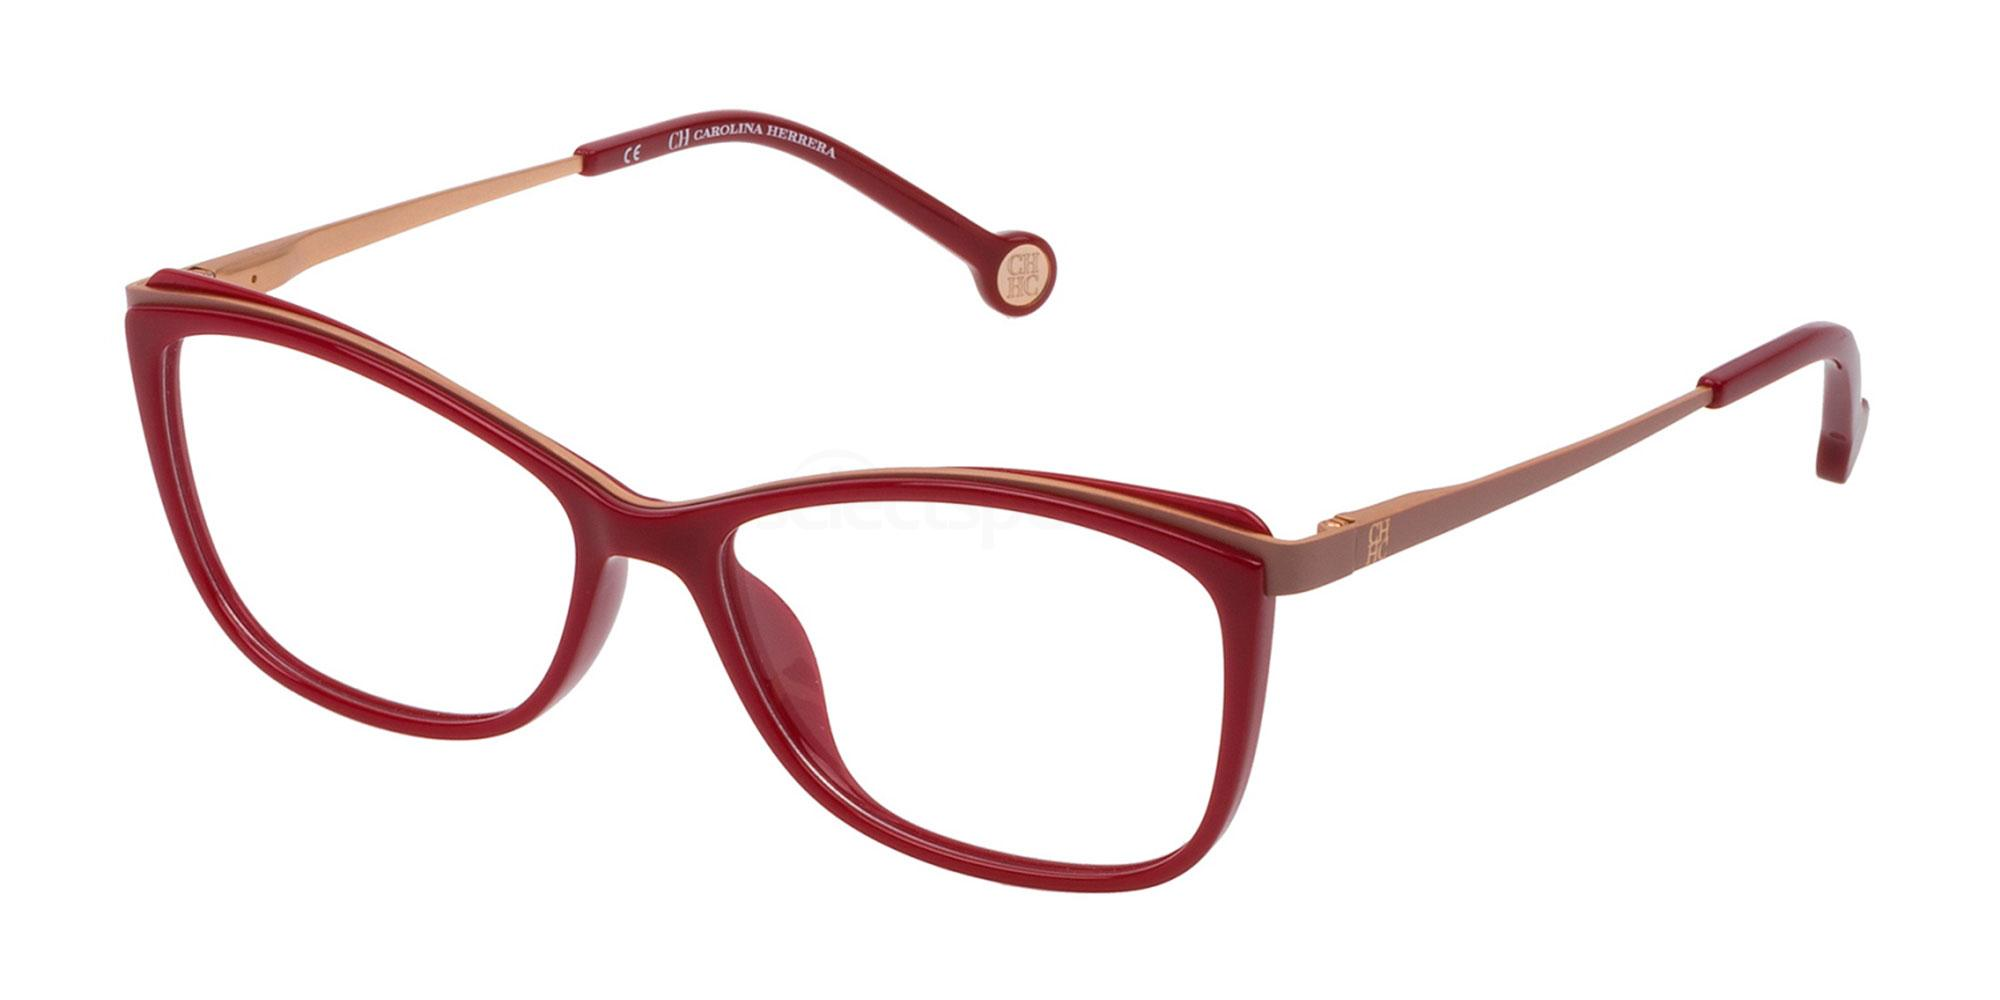 01AW VHE782 Glasses, CH Carolina Herrera